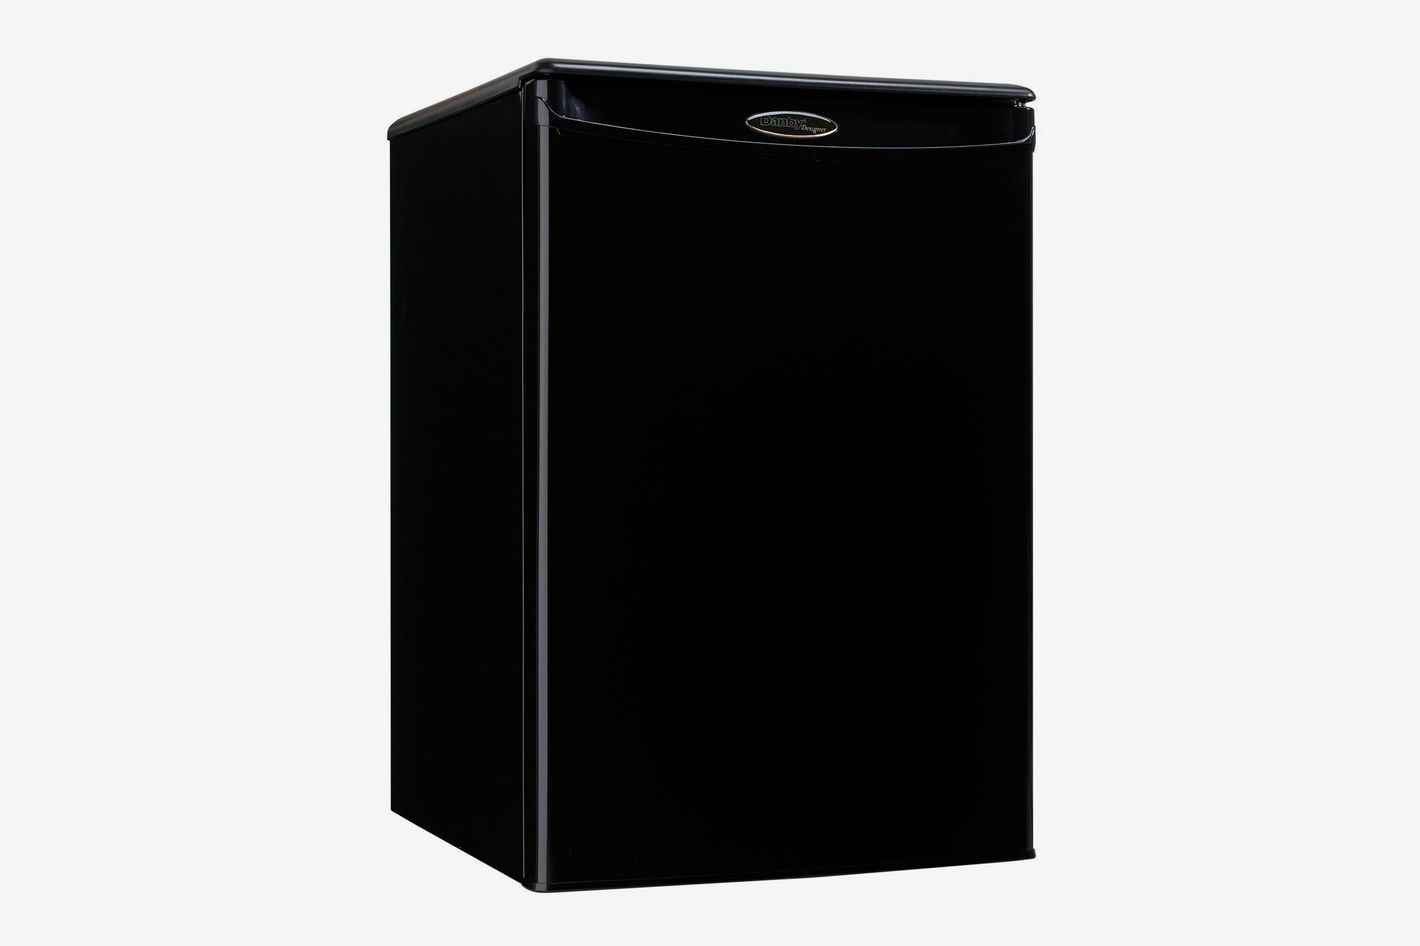 An all-black mini fridge with one door